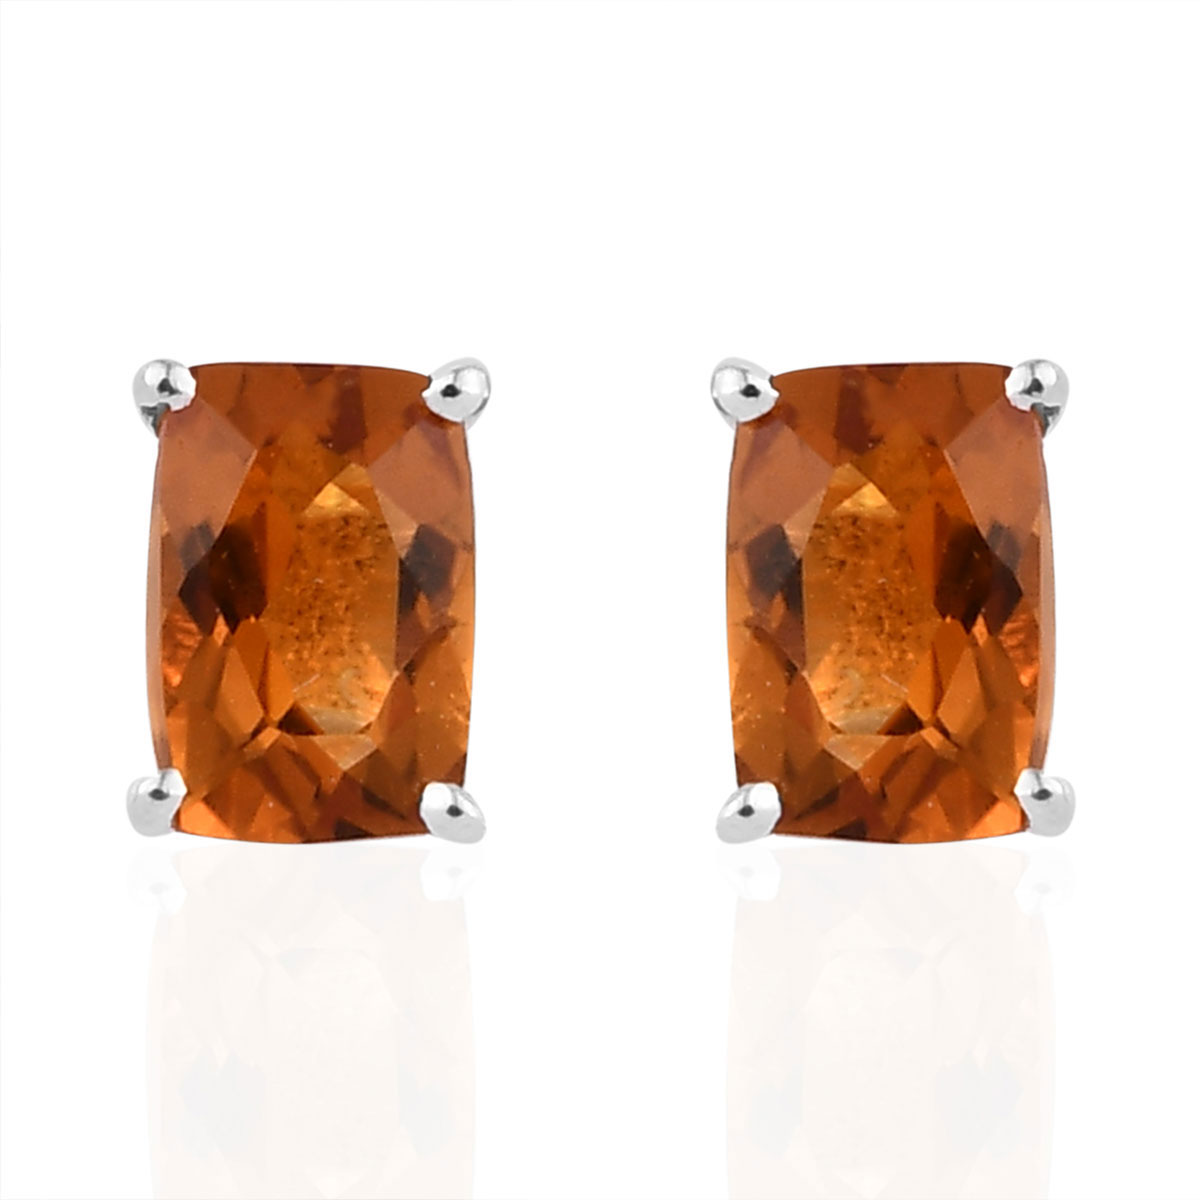 Solitaire-Earrings-925-Sterling-Silver-Cushion-Citrine-Jewelry-for-Women-Ct-1